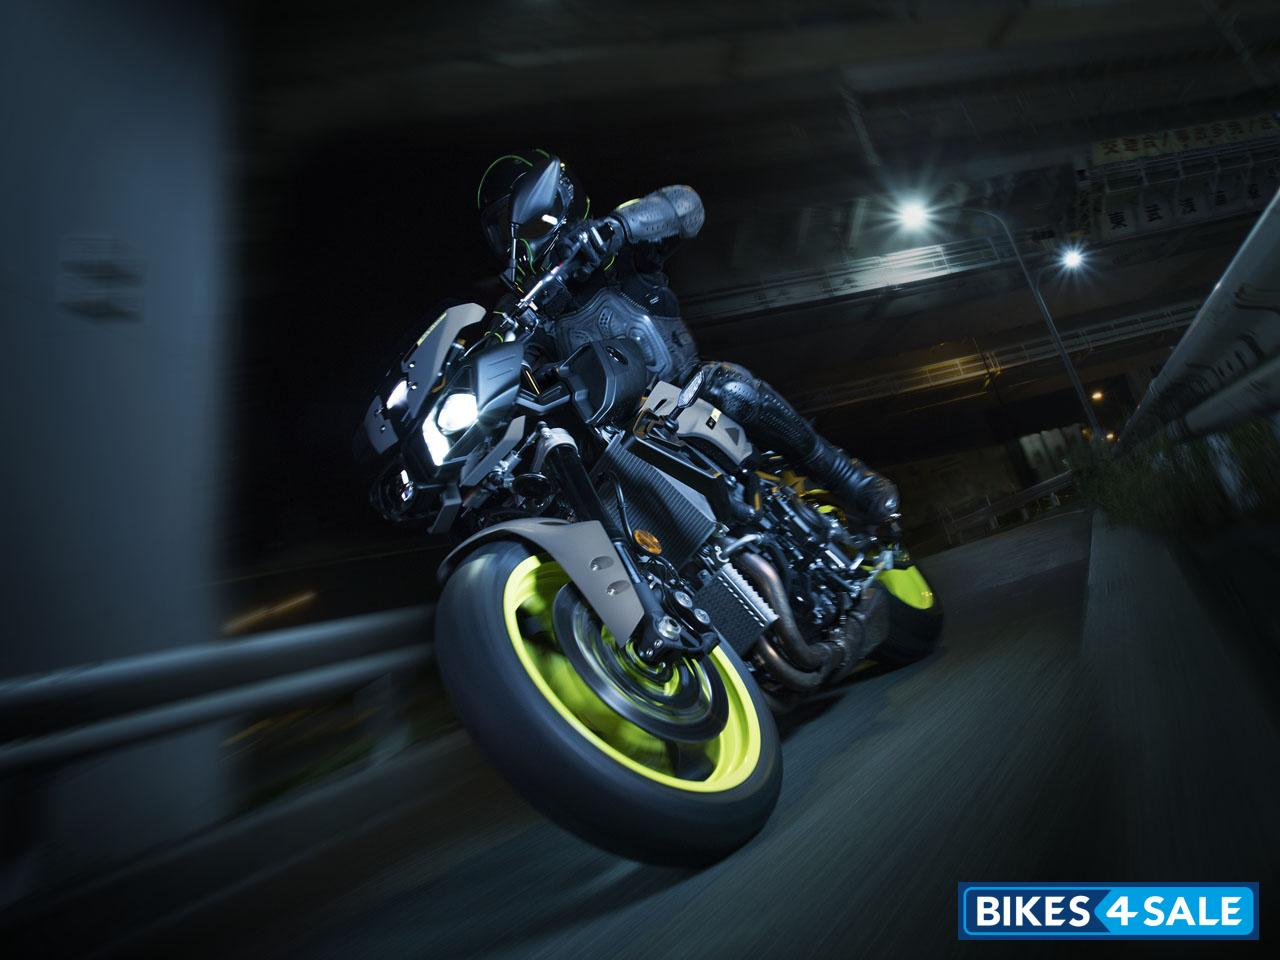 Photo 3  Yamaha MT-10 Motorcycle Picture Gallery - Bikes4Sale